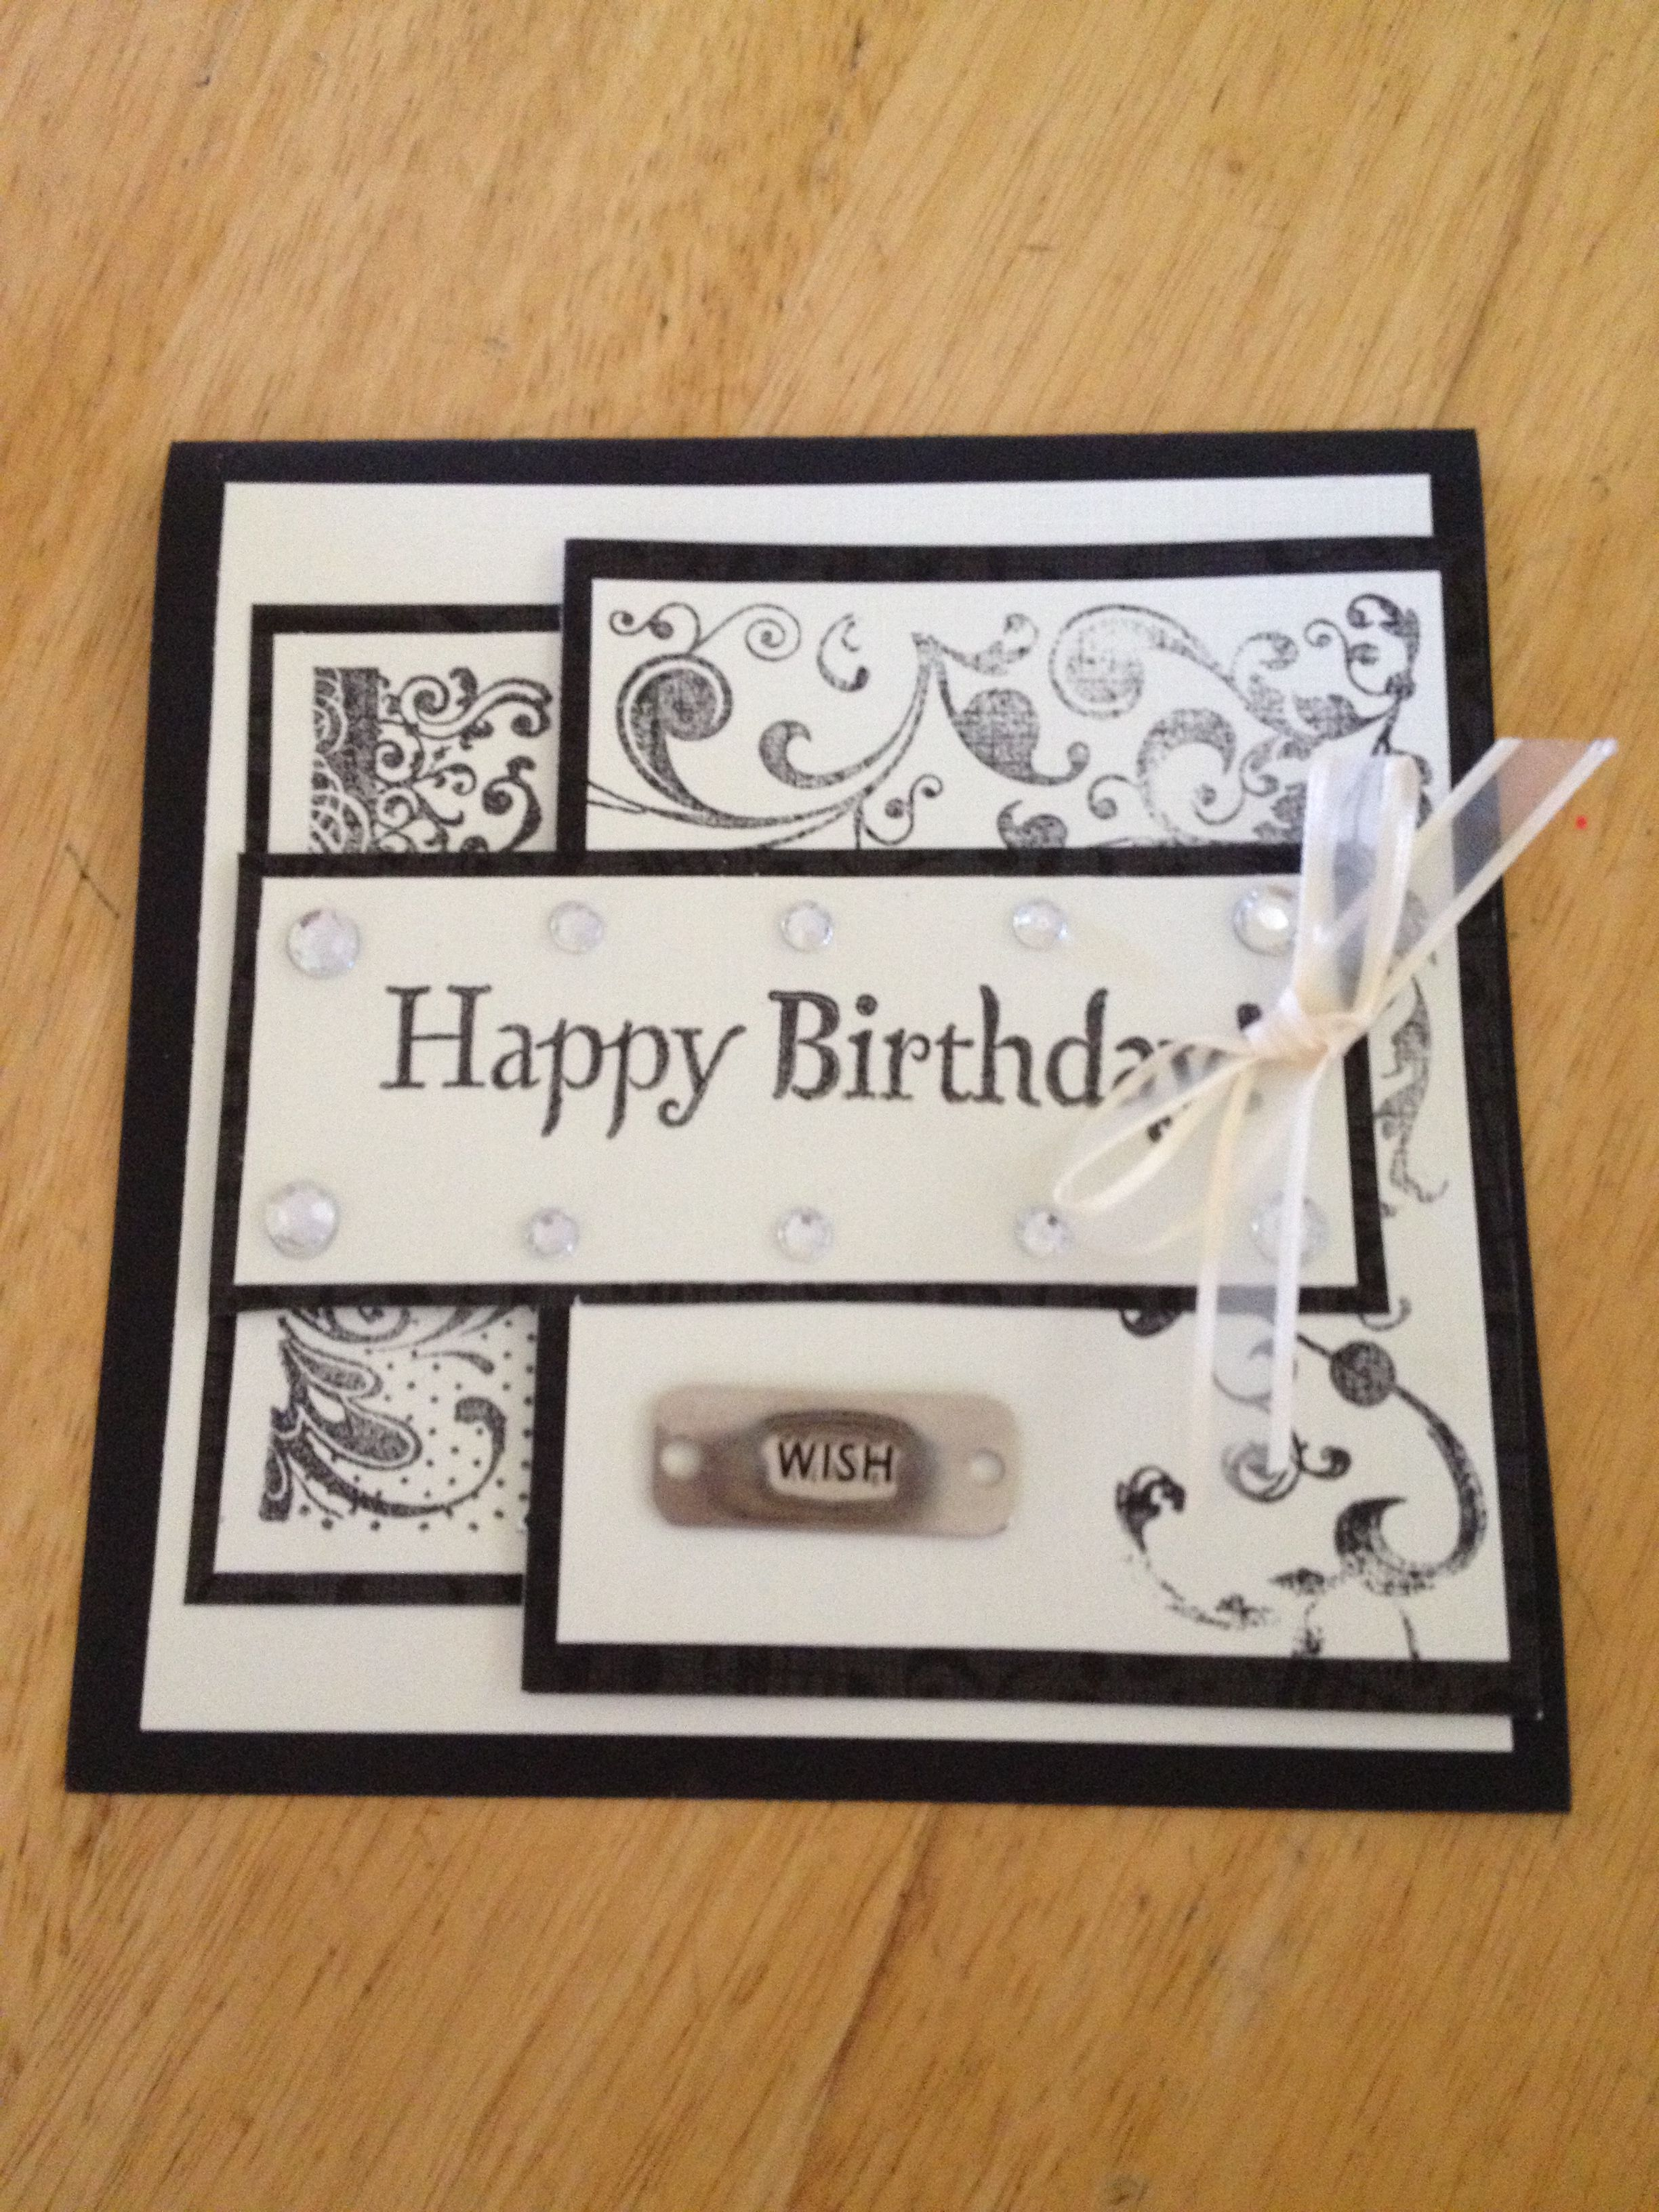 Birthday Handmade Card Idea From Pinterest Multilayered 3d With